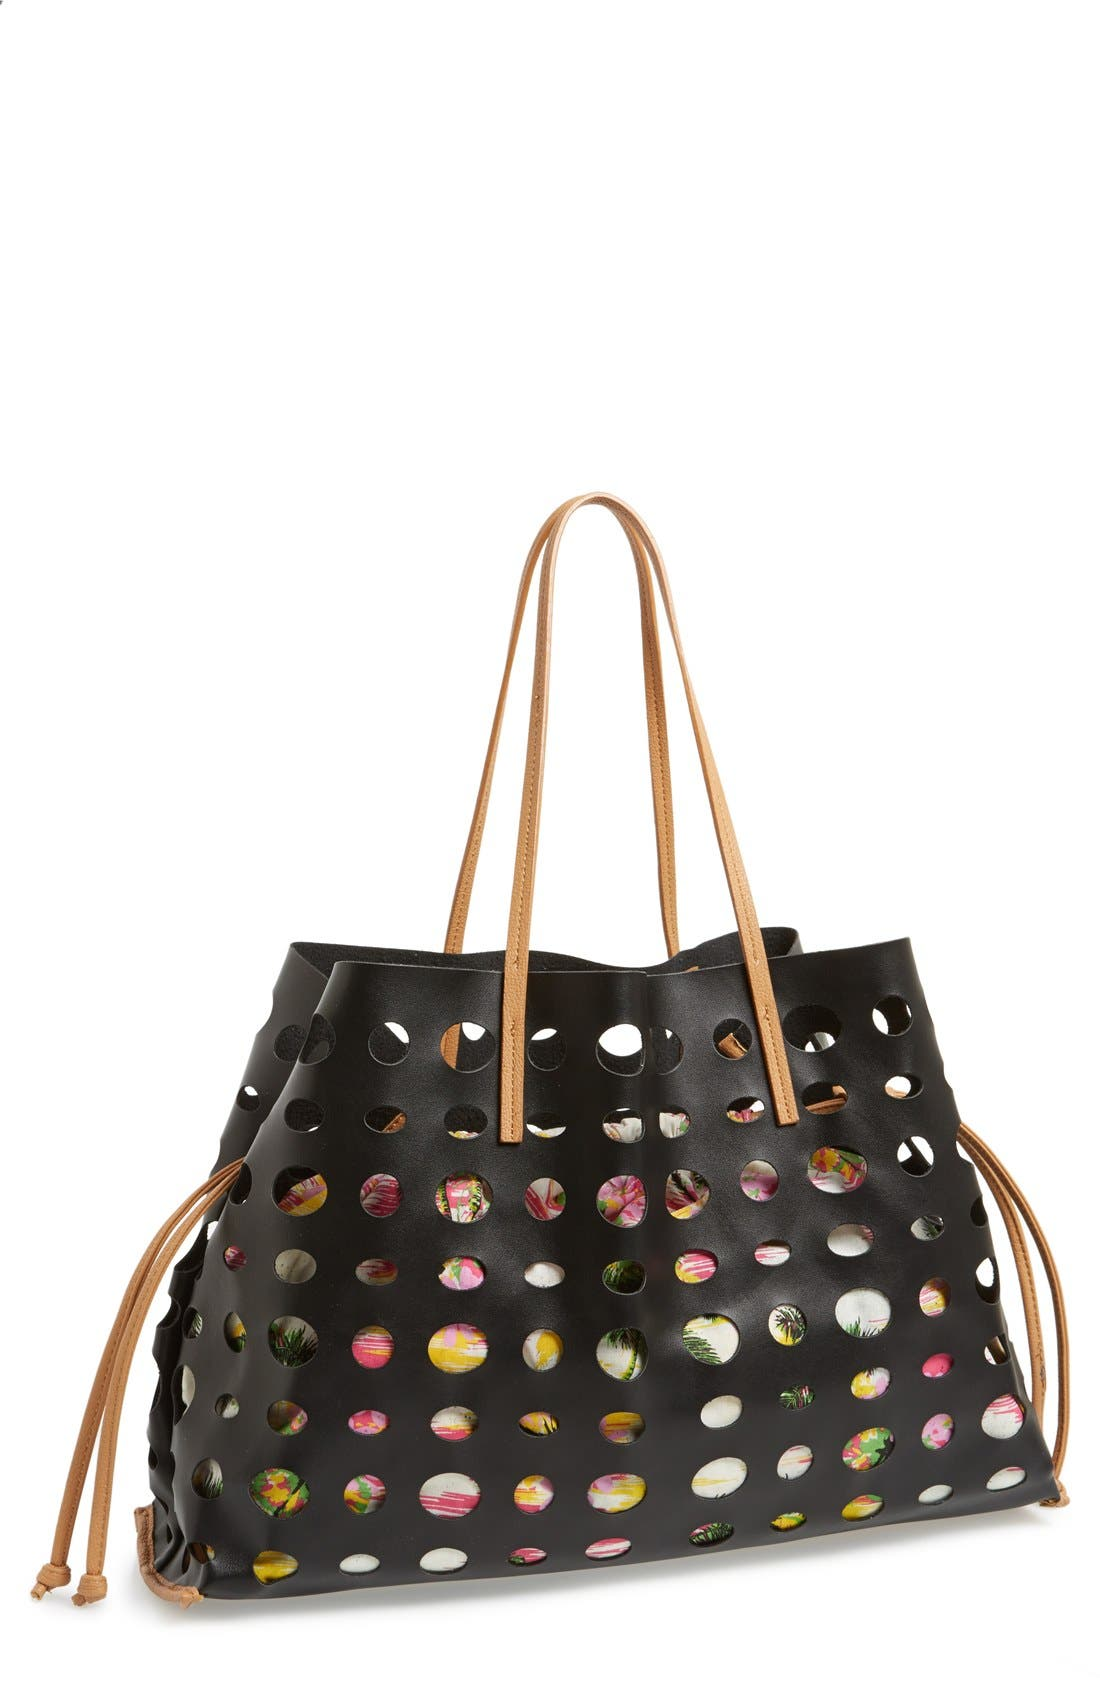 POVERTY FLATS BY RIAN, 'Large' Perforated Faux Leather Tote, Main thumbnail 1, color, 001